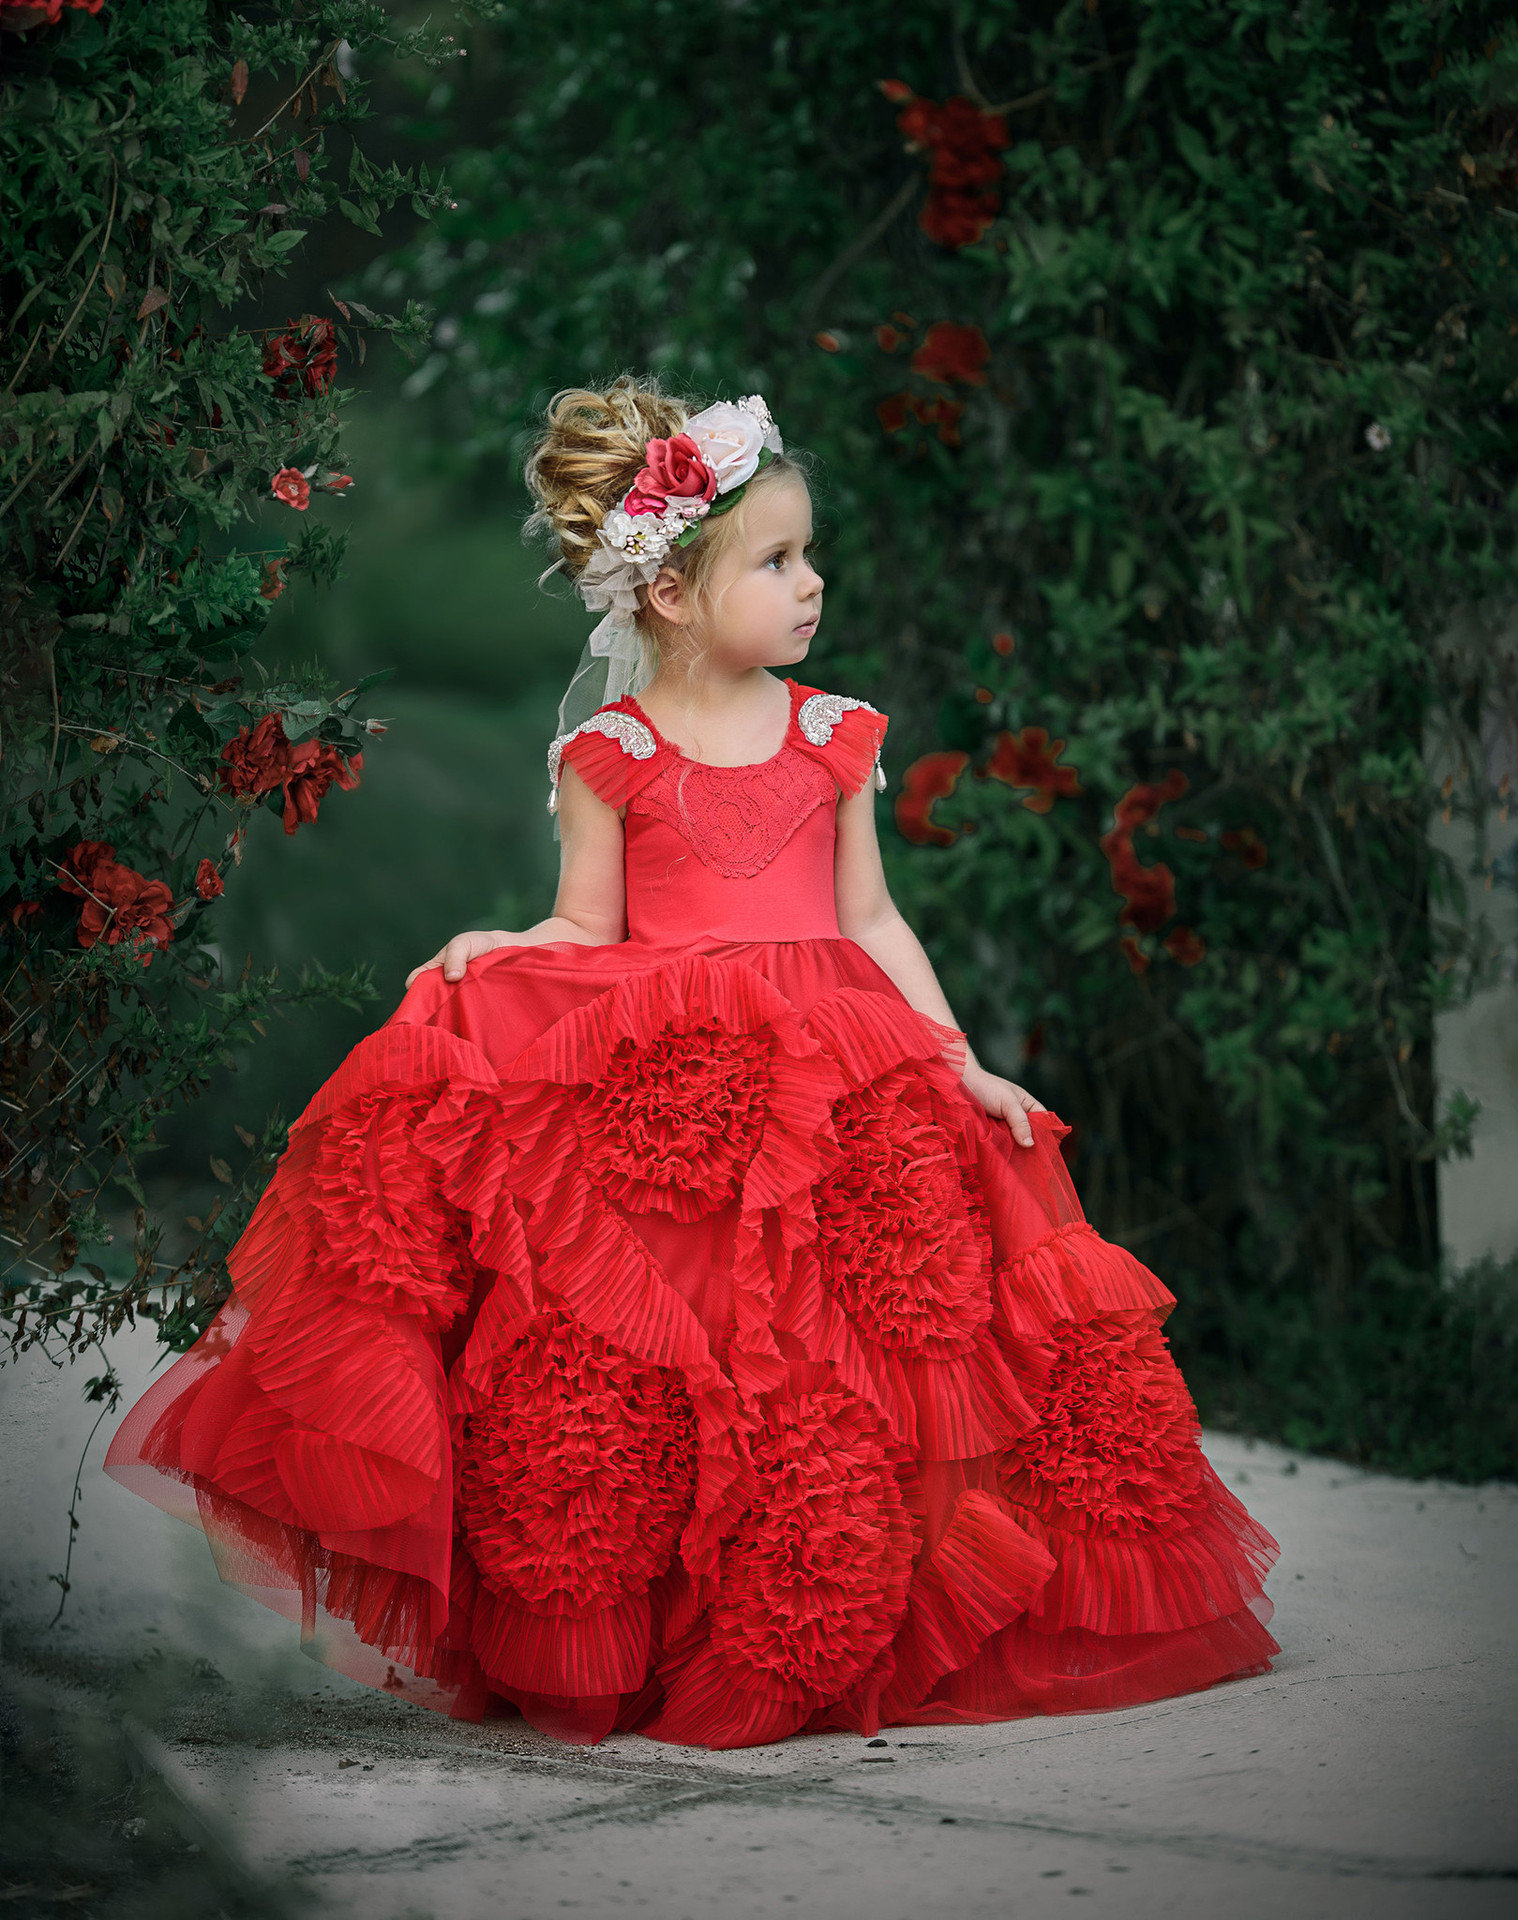 Girls Floral Dress Red Ball Gown Floor Length Gowns For Girls